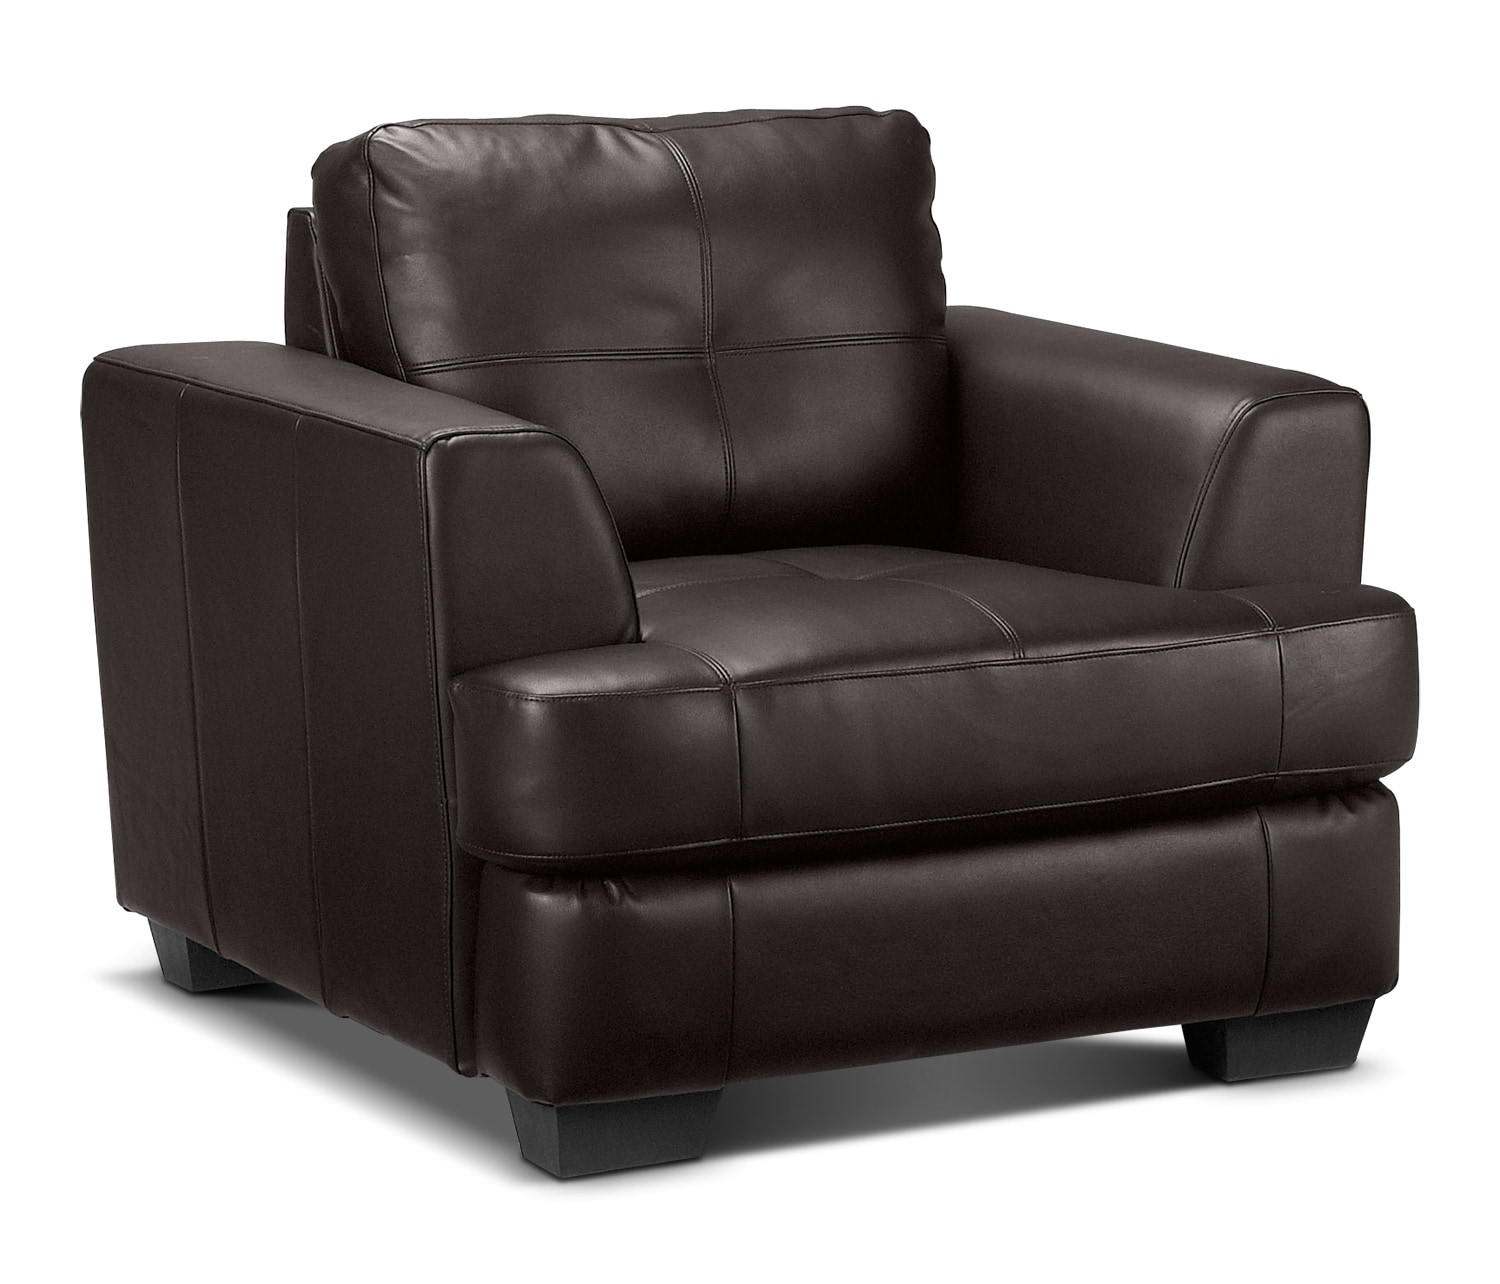 Superb Chairs For Living Room #12: Caitlyn Chair - Dark Chocolate